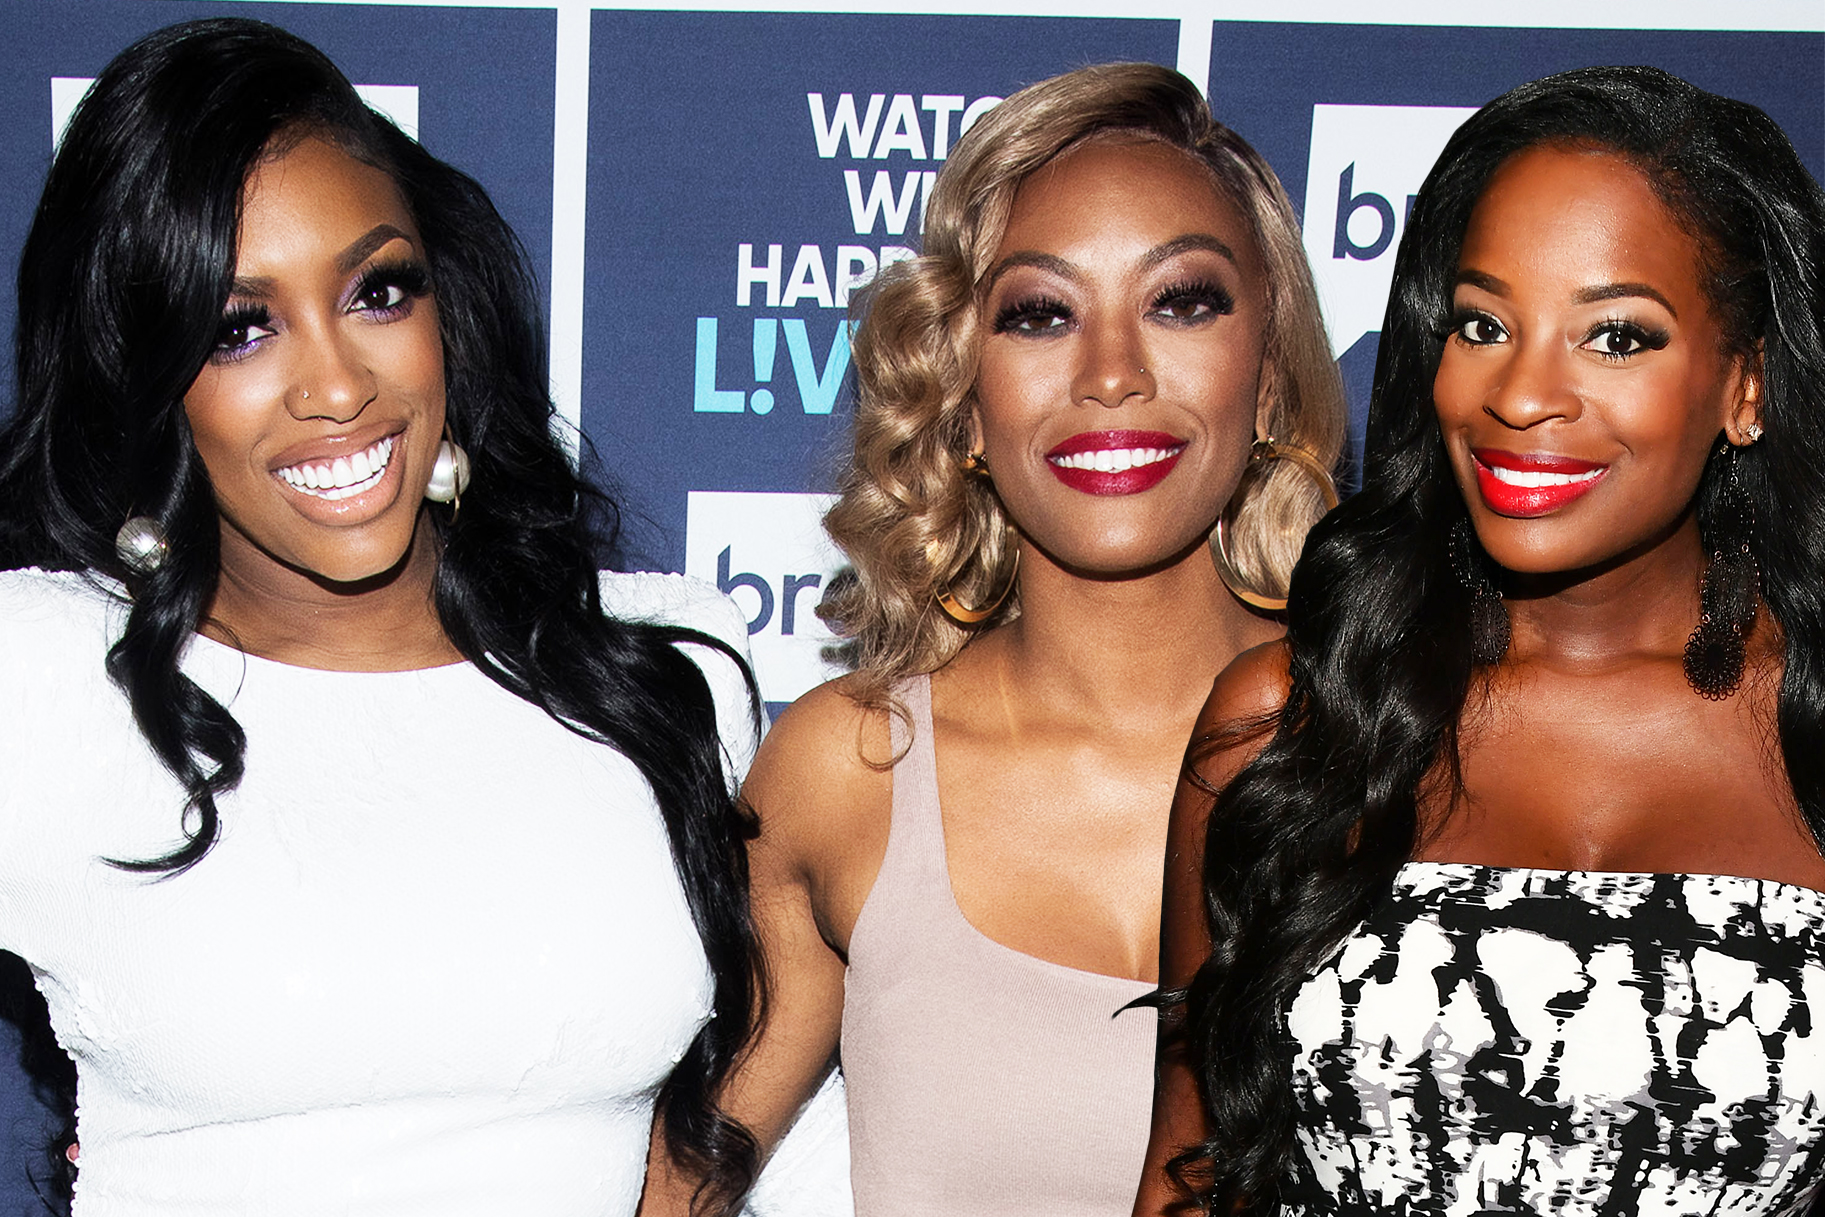 Porsha Williams Shares Birthday Photos And Shows Off Her Beach Body - Check Out The Juicy Pics With Her BFF, Shamea Morton, And Sister, Lauren Williams